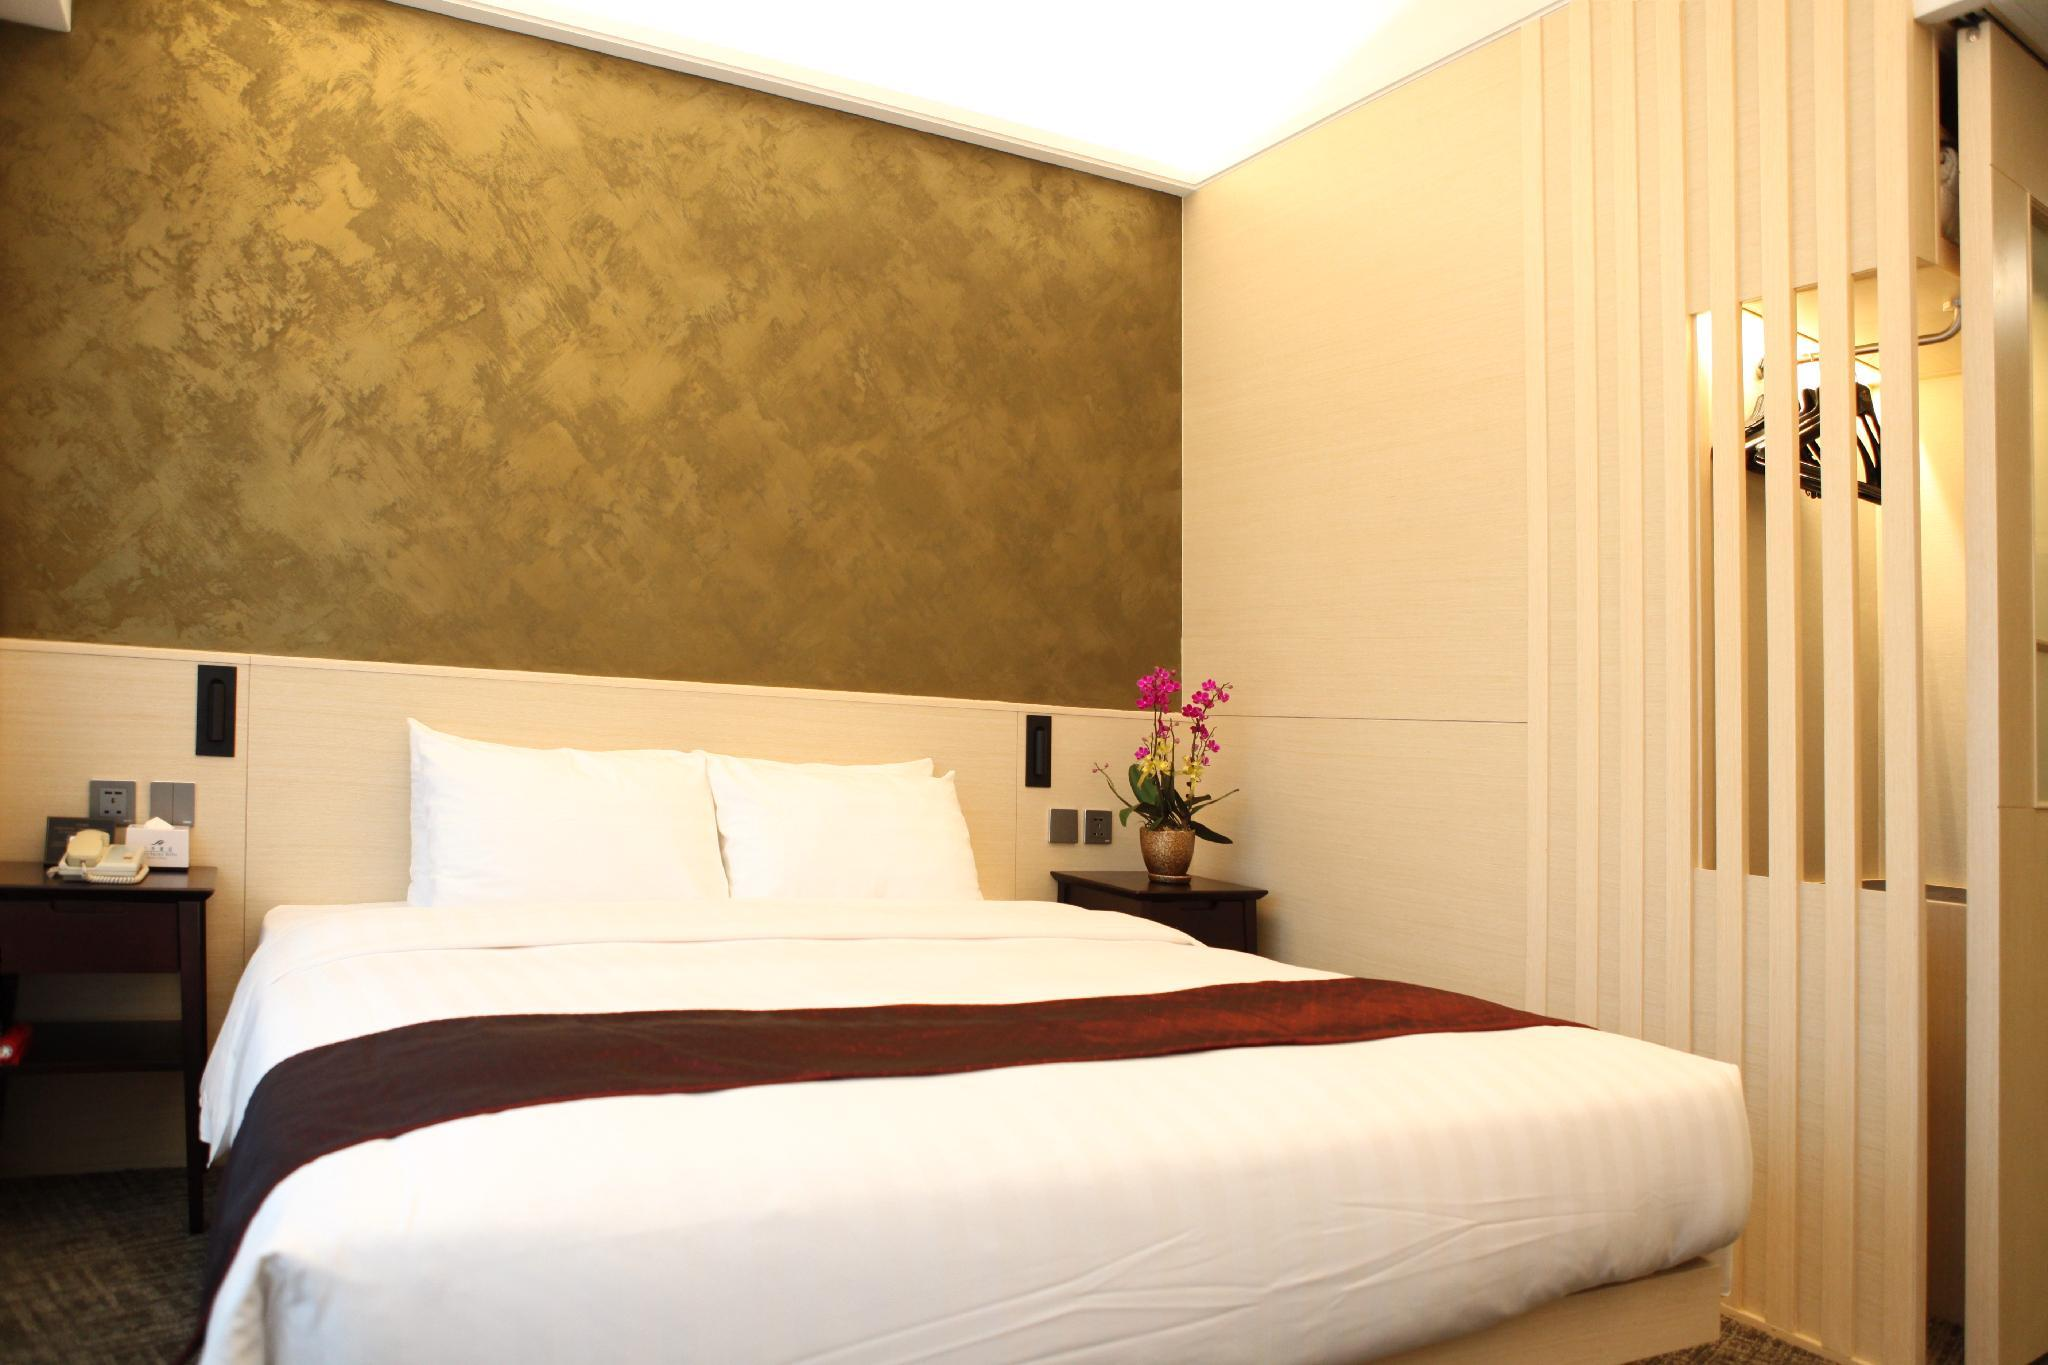 Premier Room 1 King Bed